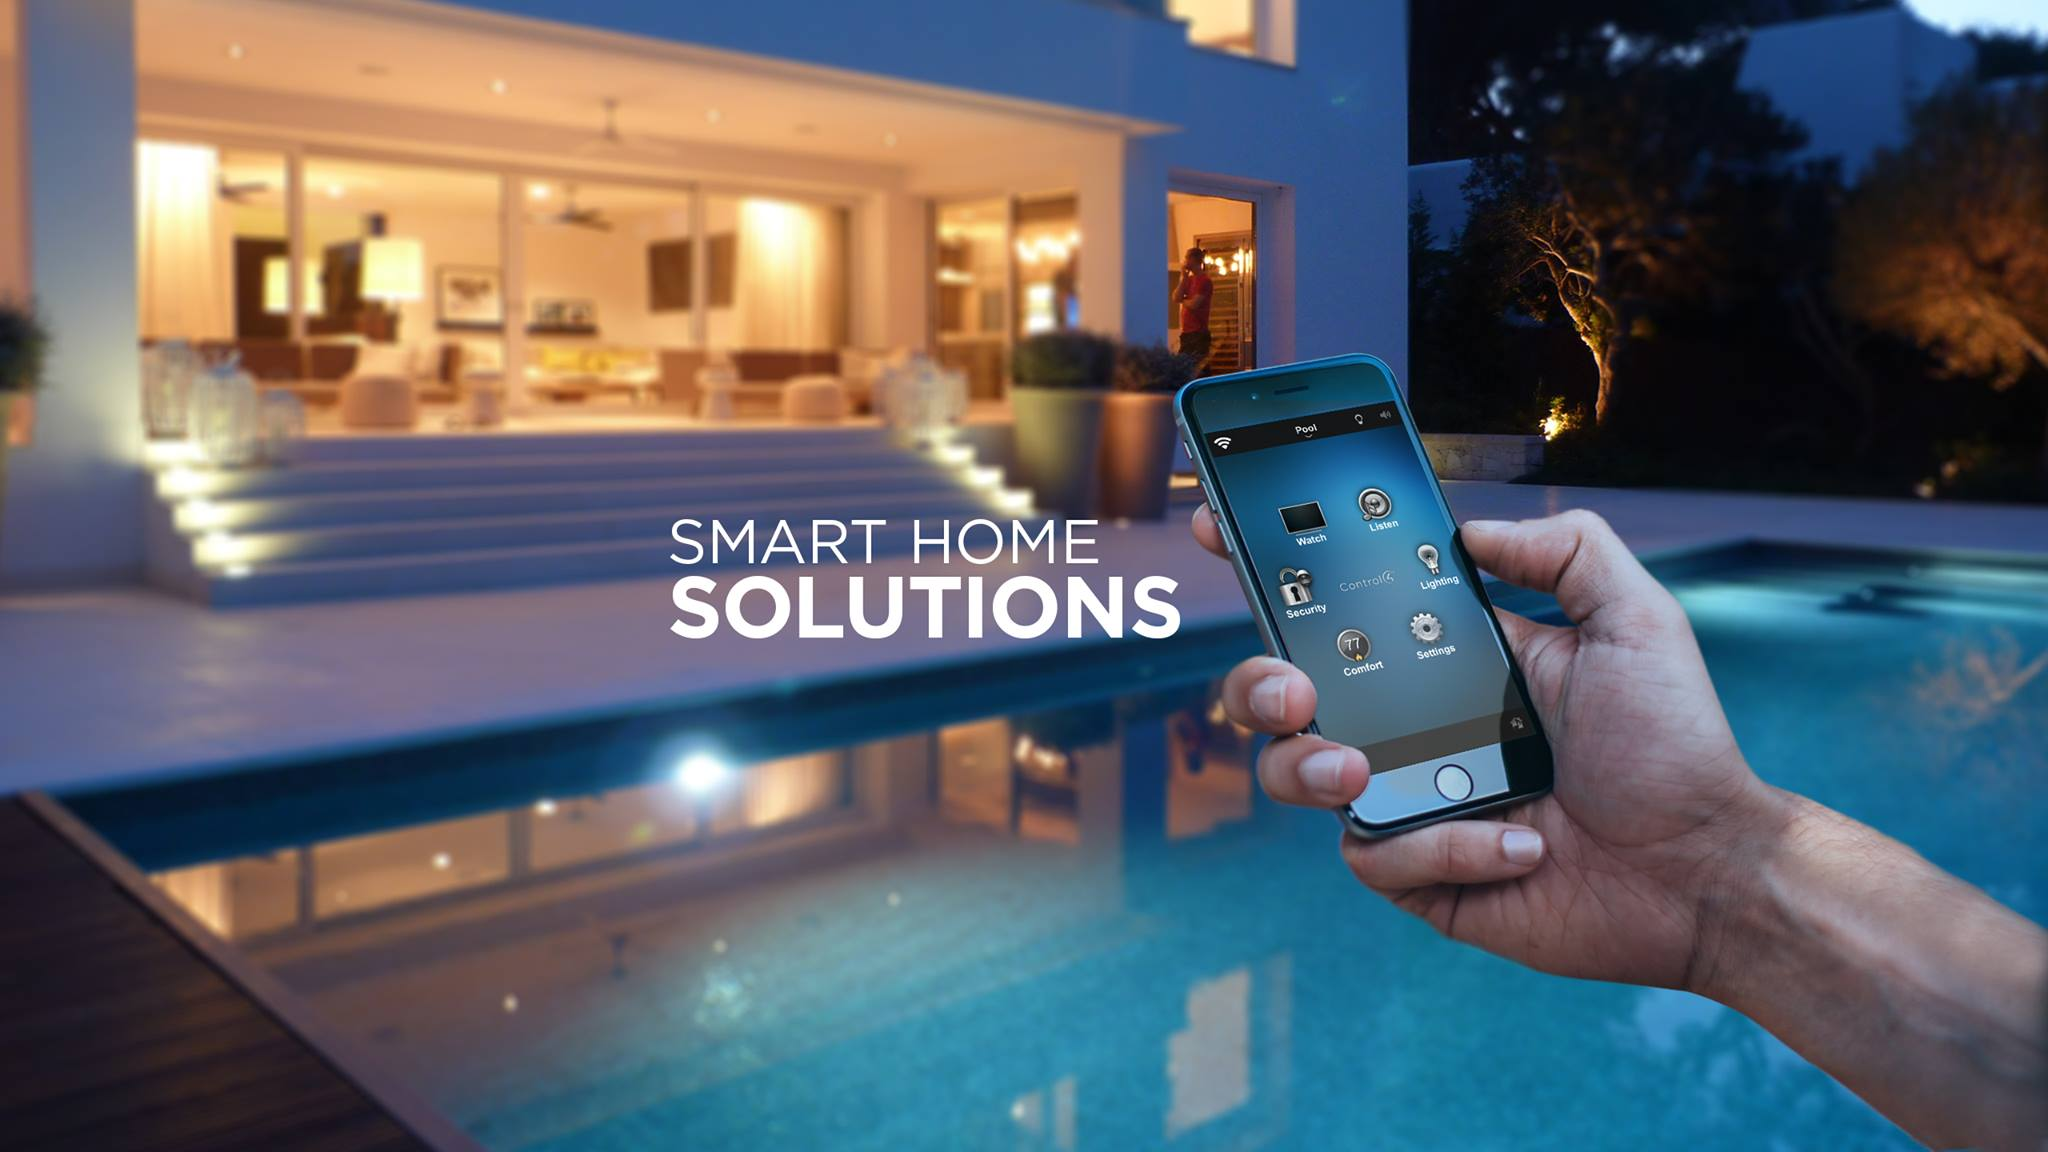 Control4 Why 2021 Will be the Best Year Yet for Investing in a Control4 Home Automation System